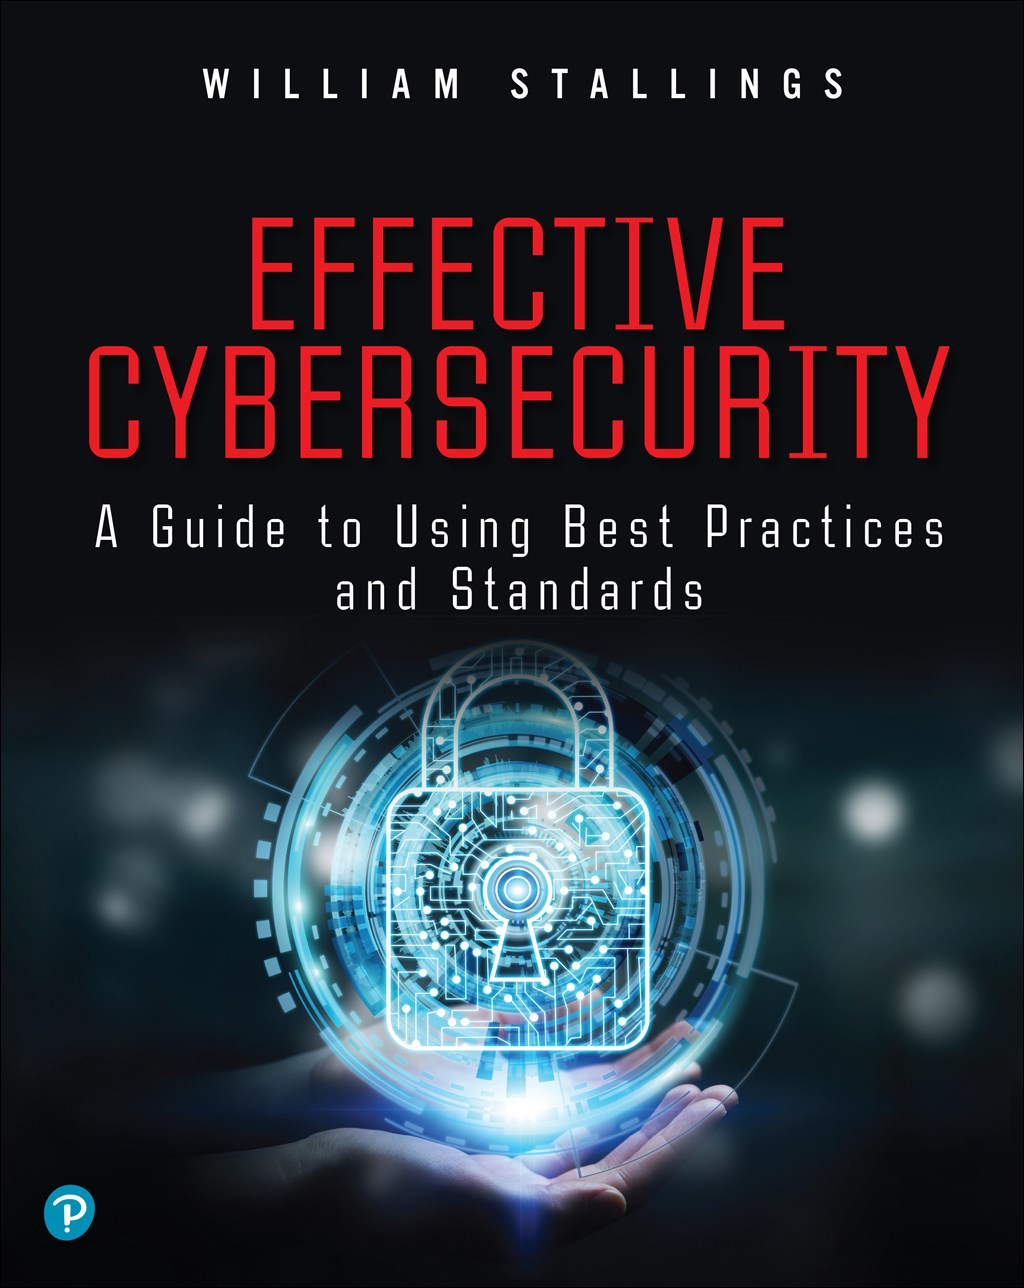 Effective Cybersecurity: A Guide to Using Best Practices and Standards